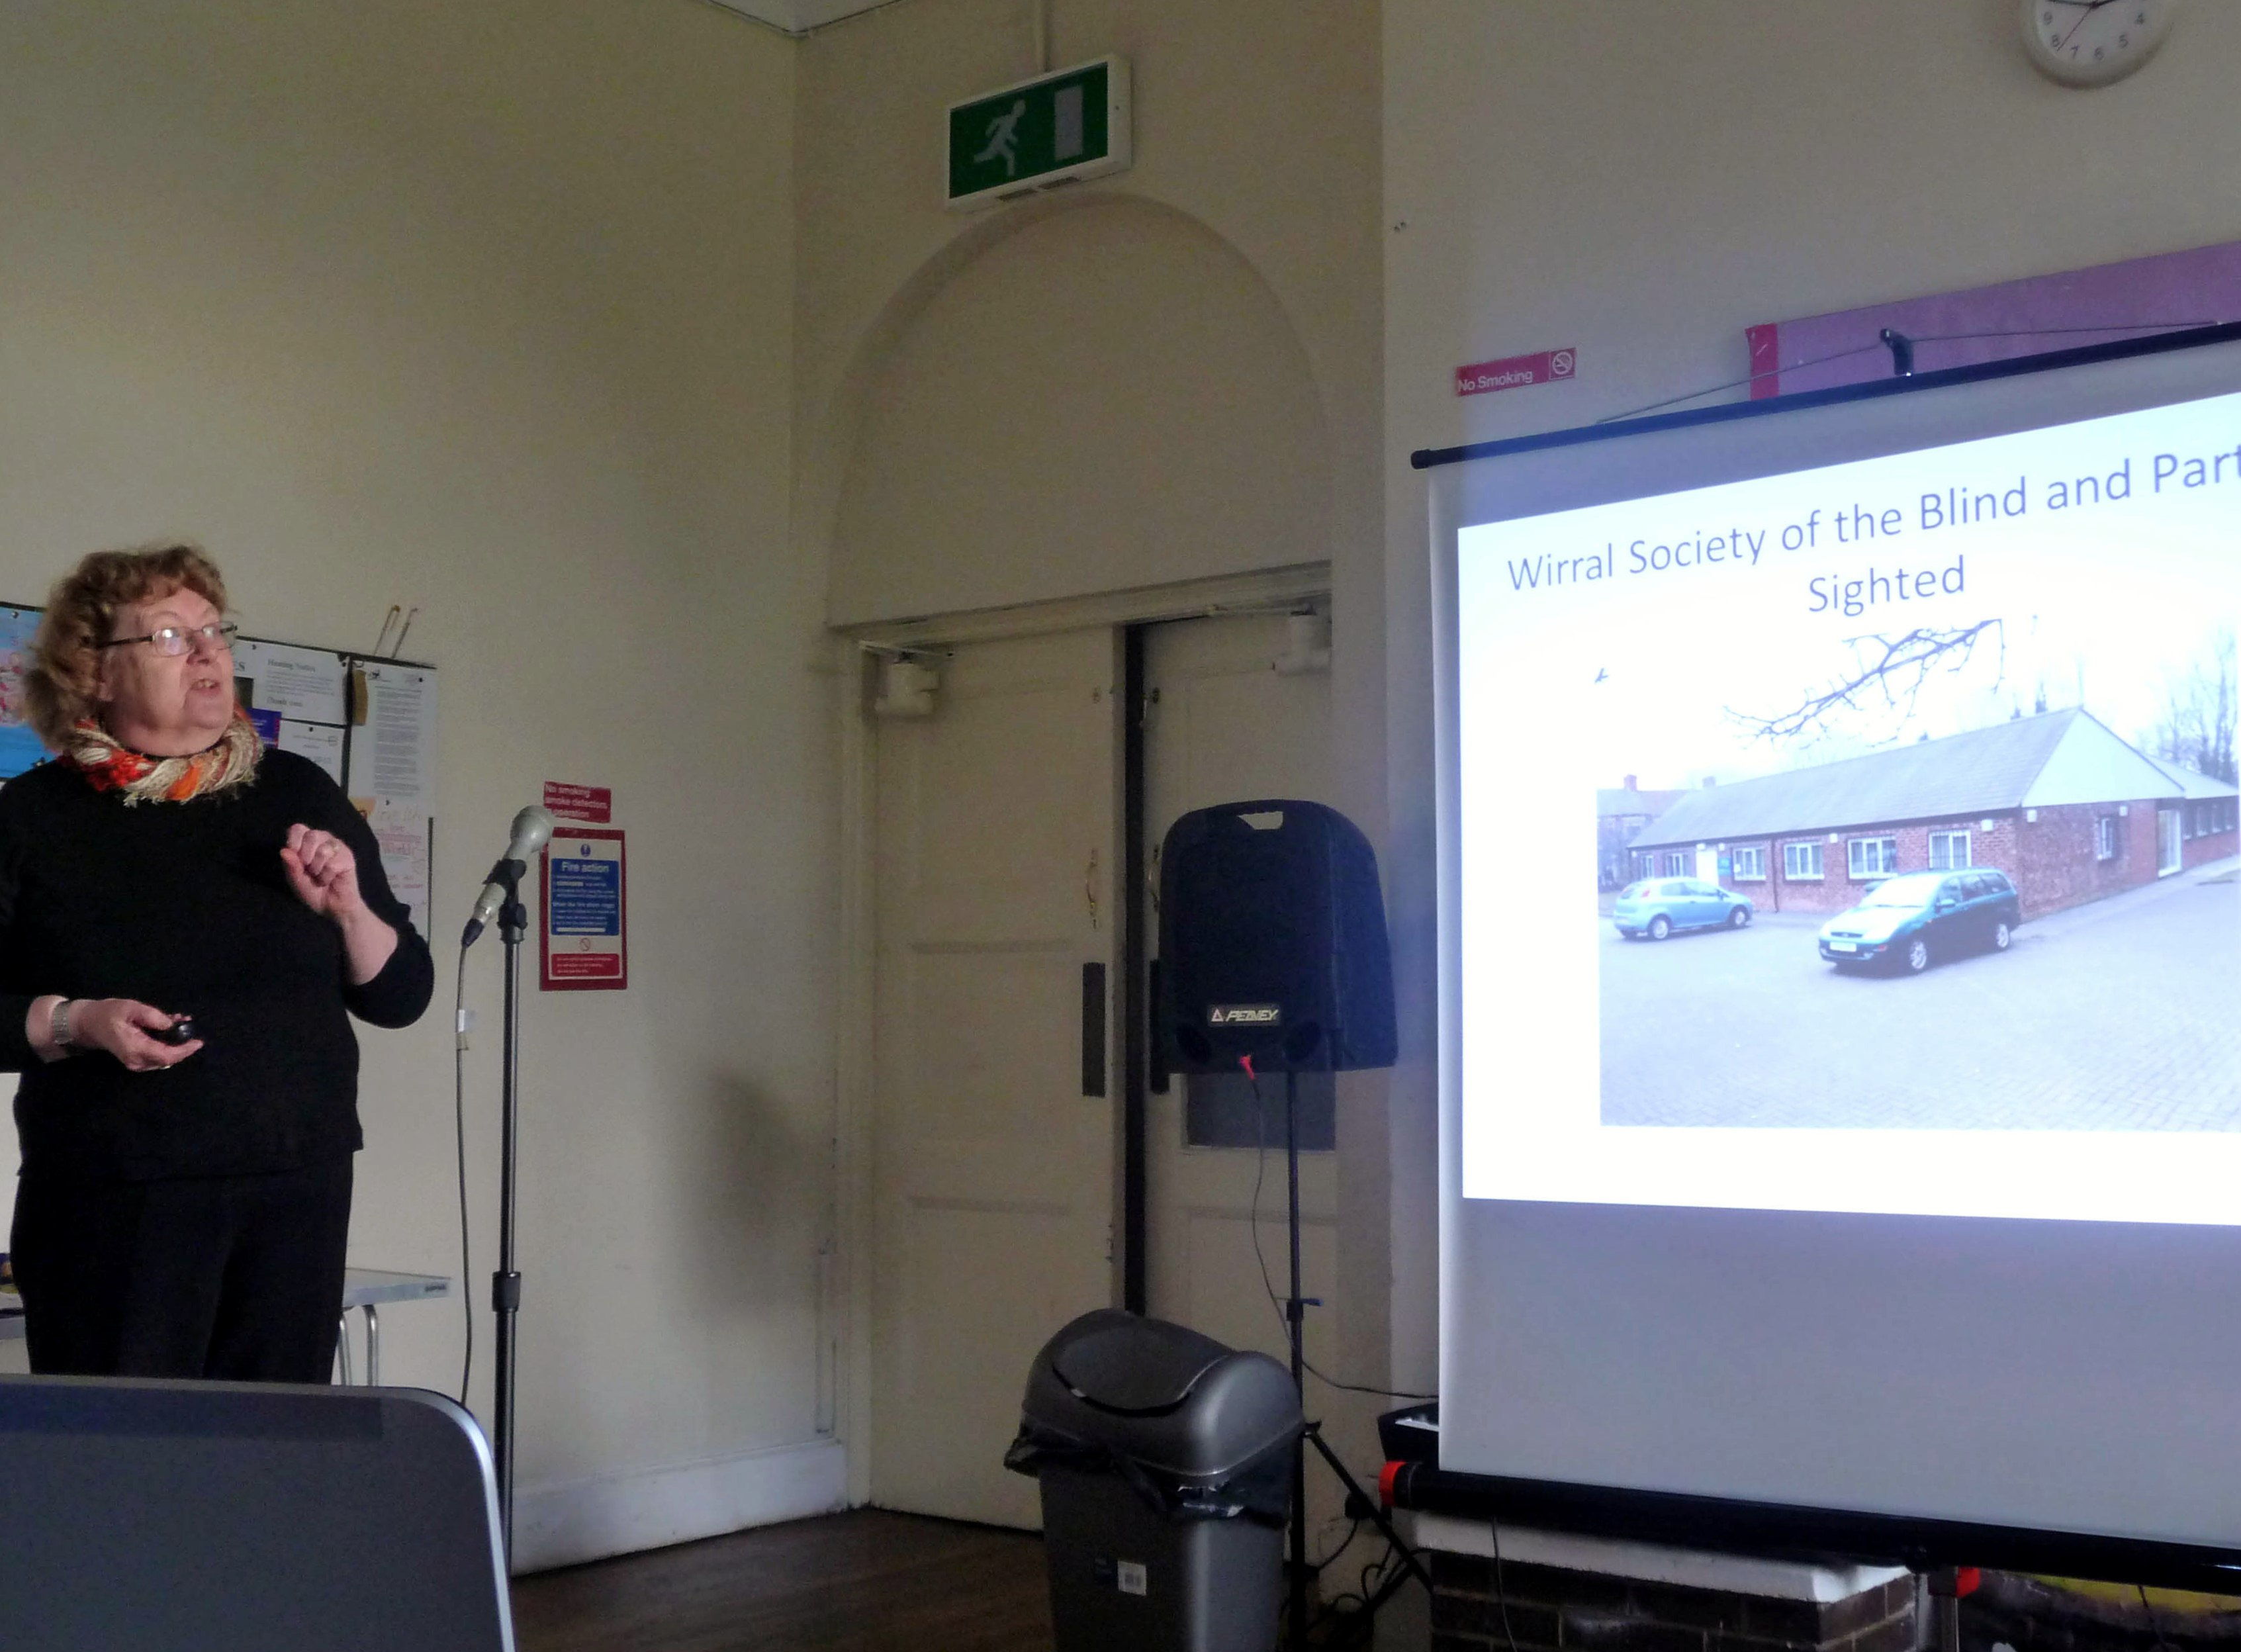 Terri Holmes from Wirral Society of the Blind and Partially Sighted speaking to Merseyside Embroiderers Guild members